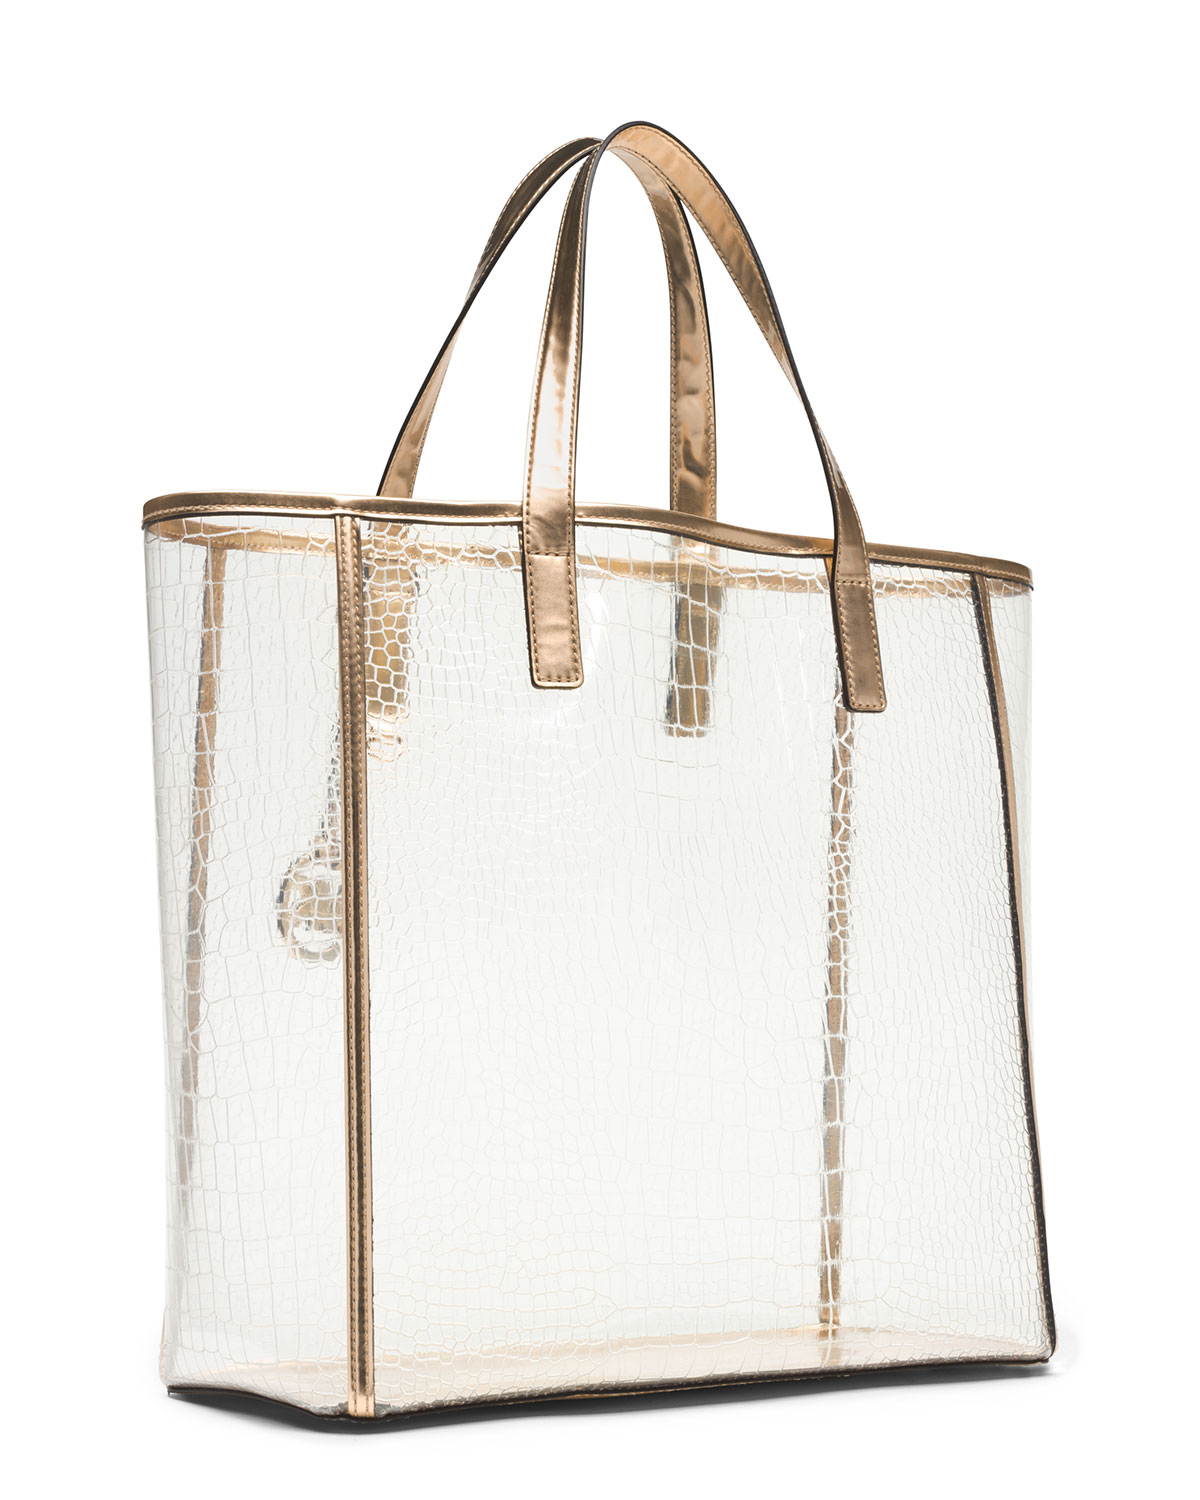 17d7068b9edcc3 ... bag large clear tote 491e8 19095; low cost lyst michael michael kors  large nora tote in metallic e891d 32c99